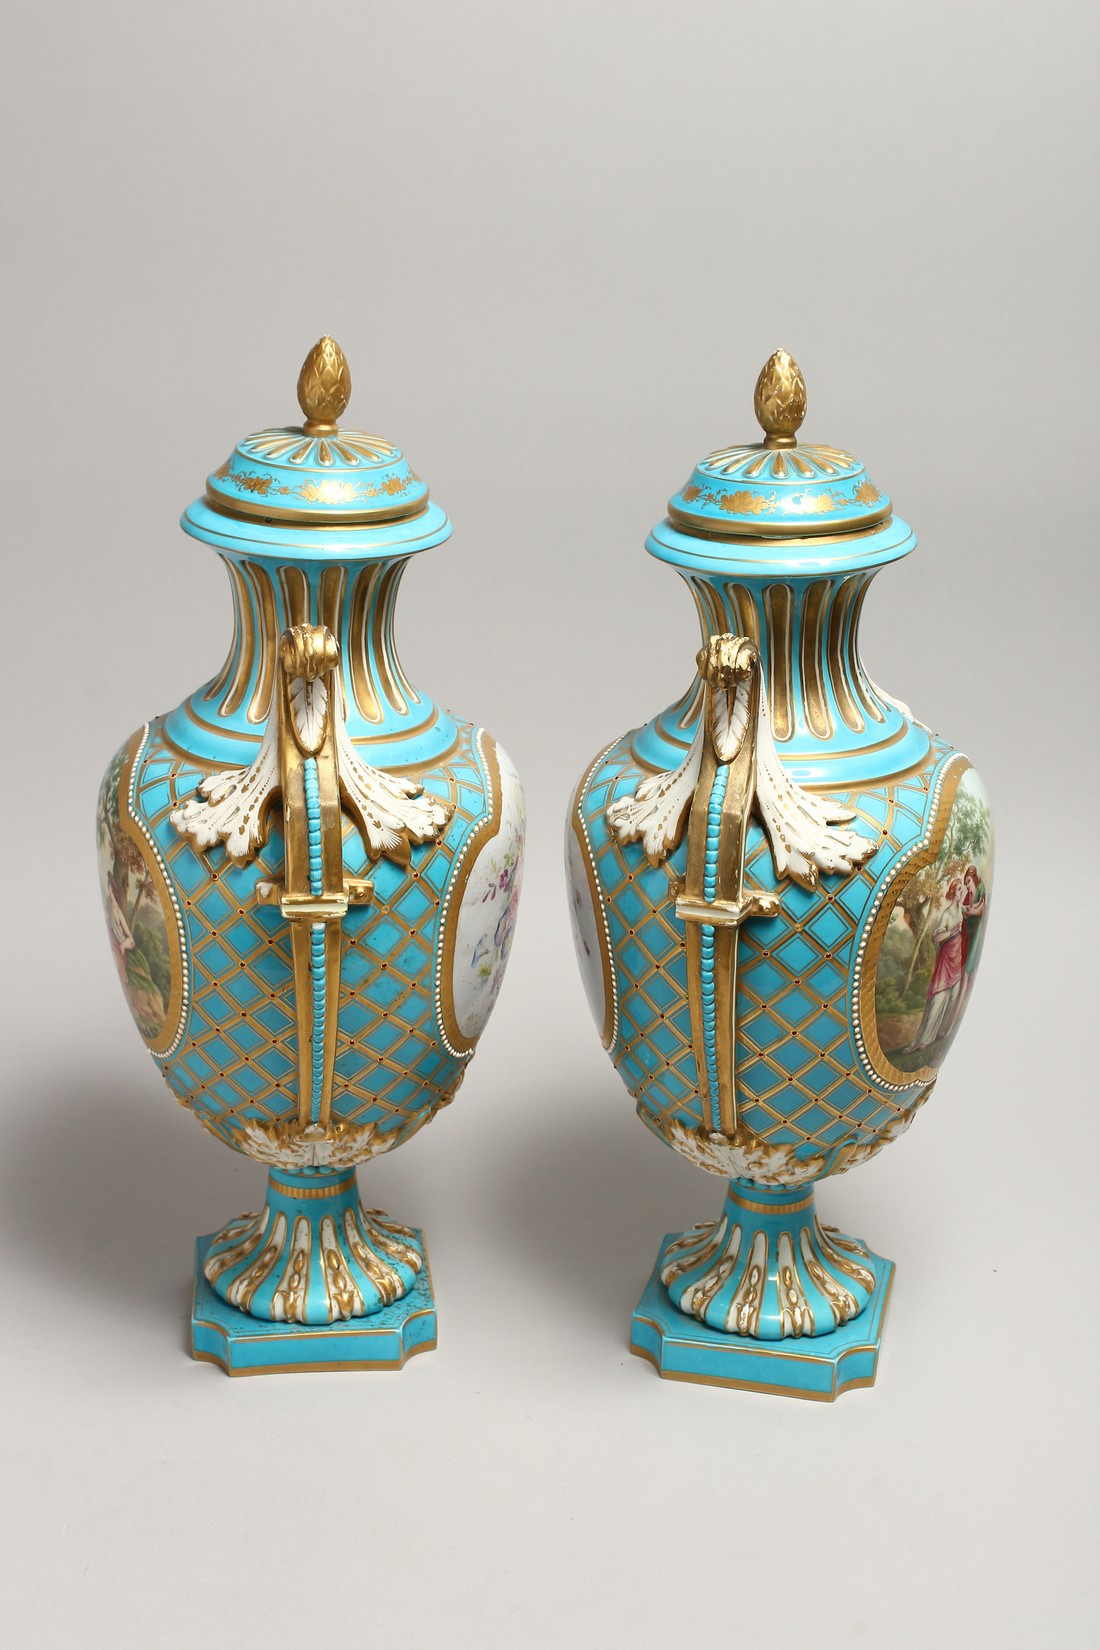 A SUPERB LARGE PAIR OF SEVRES TWO HANDLED URN SHAPED VASES AND COVERS, blue ground edged in gilt and - Image 4 of 10